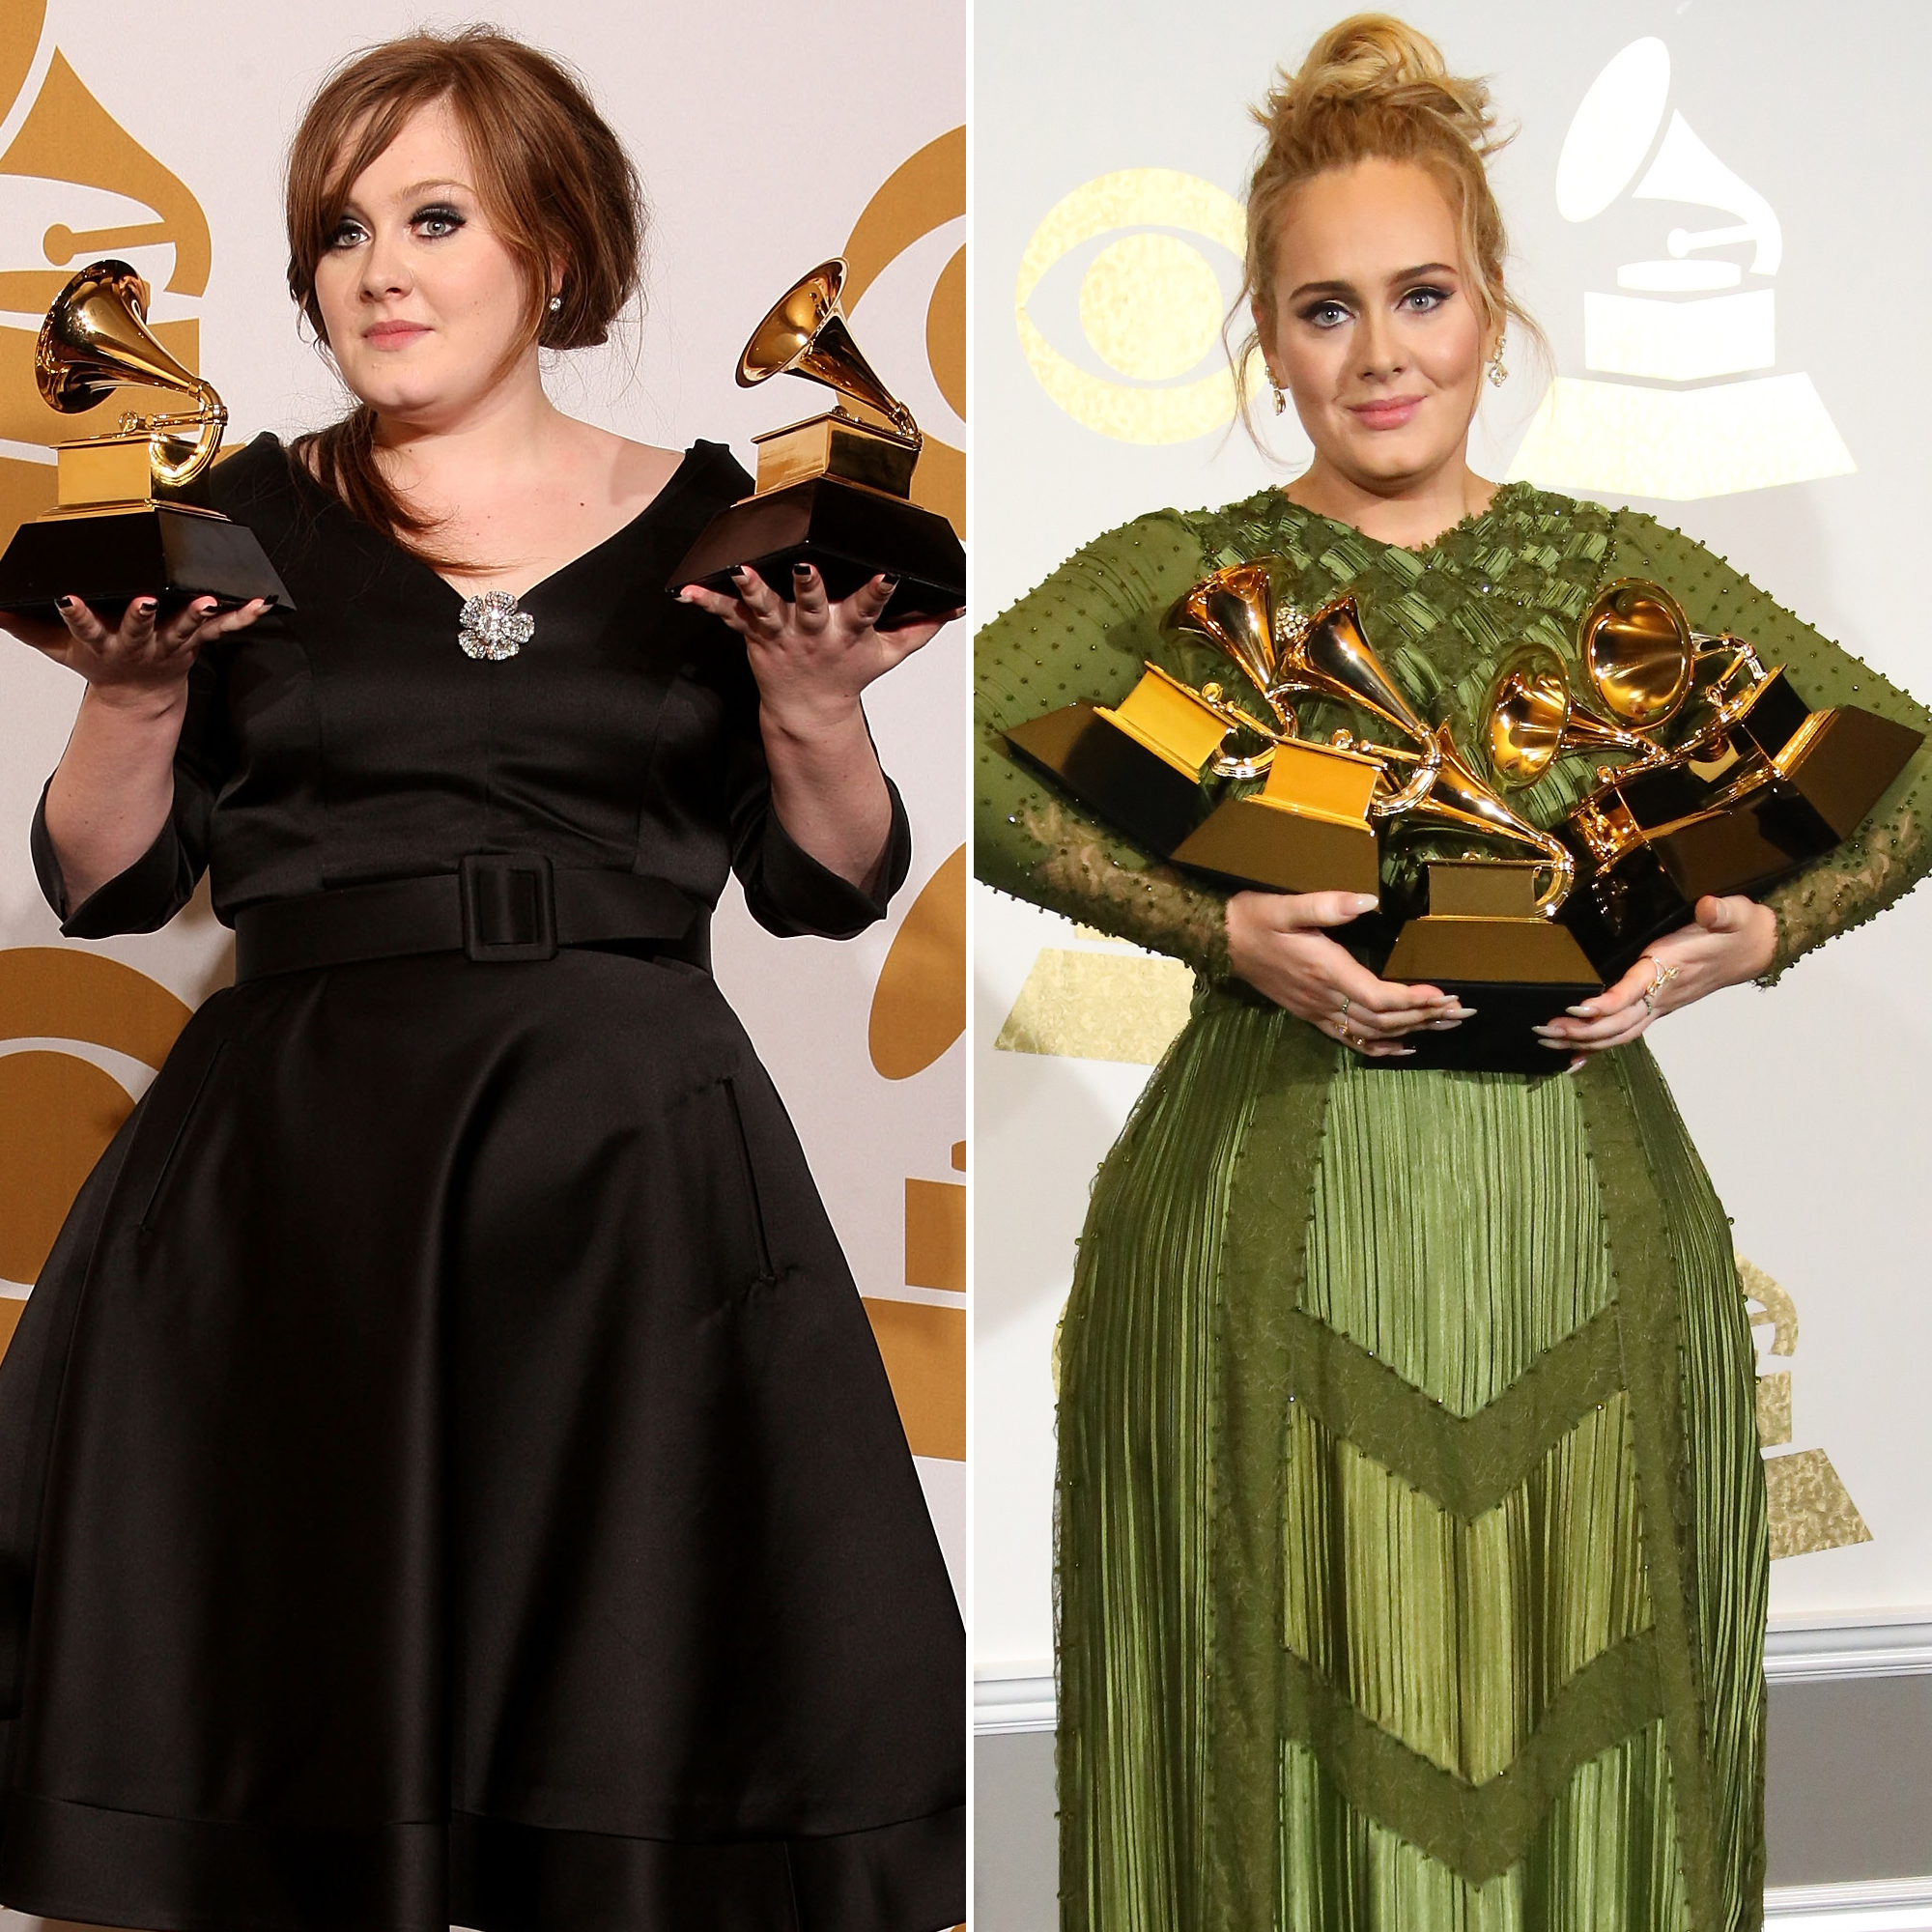 Best New Artist Grammy Winners Where Are They Now - Who She Beat: Duffy, Jonas Brothers, Lady Antebellum, Jazmine Sullivan Where Is She Now: Adele released her second studio album, 21 , in 2011, which won Album of the Year at the 2012 Grammys. The singer's third album, 25 , took home the same honor in 2017.